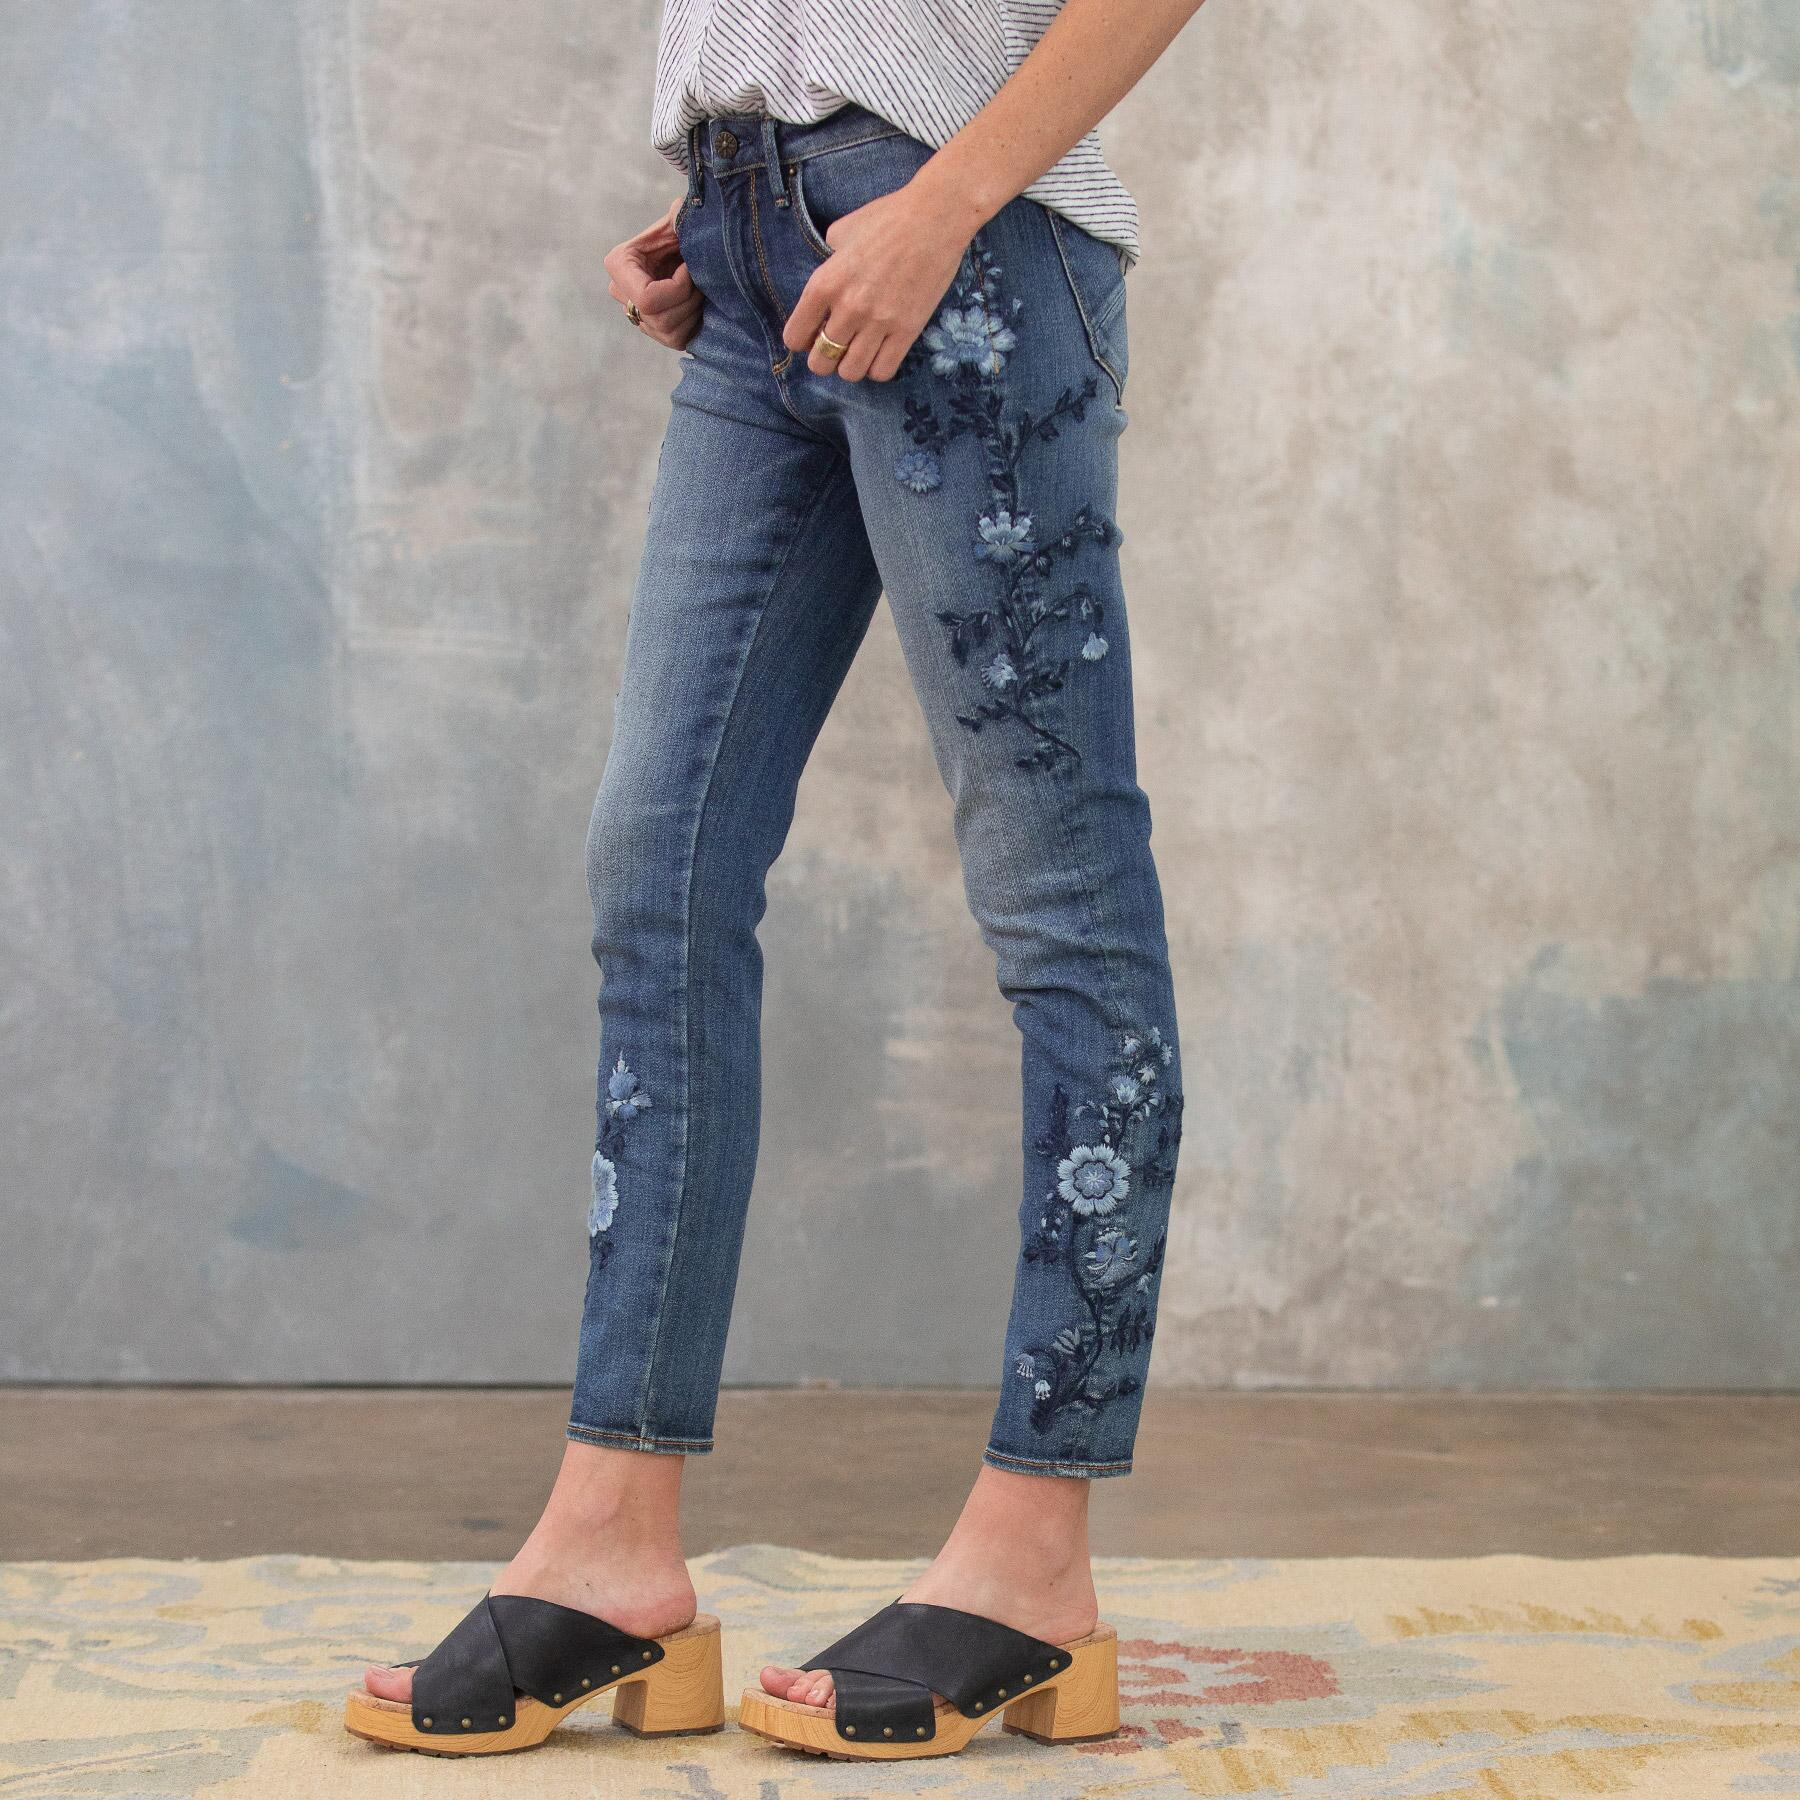 JACKIE BLUE FLORAL HIGH RISE ANKLE JEANS: View 3